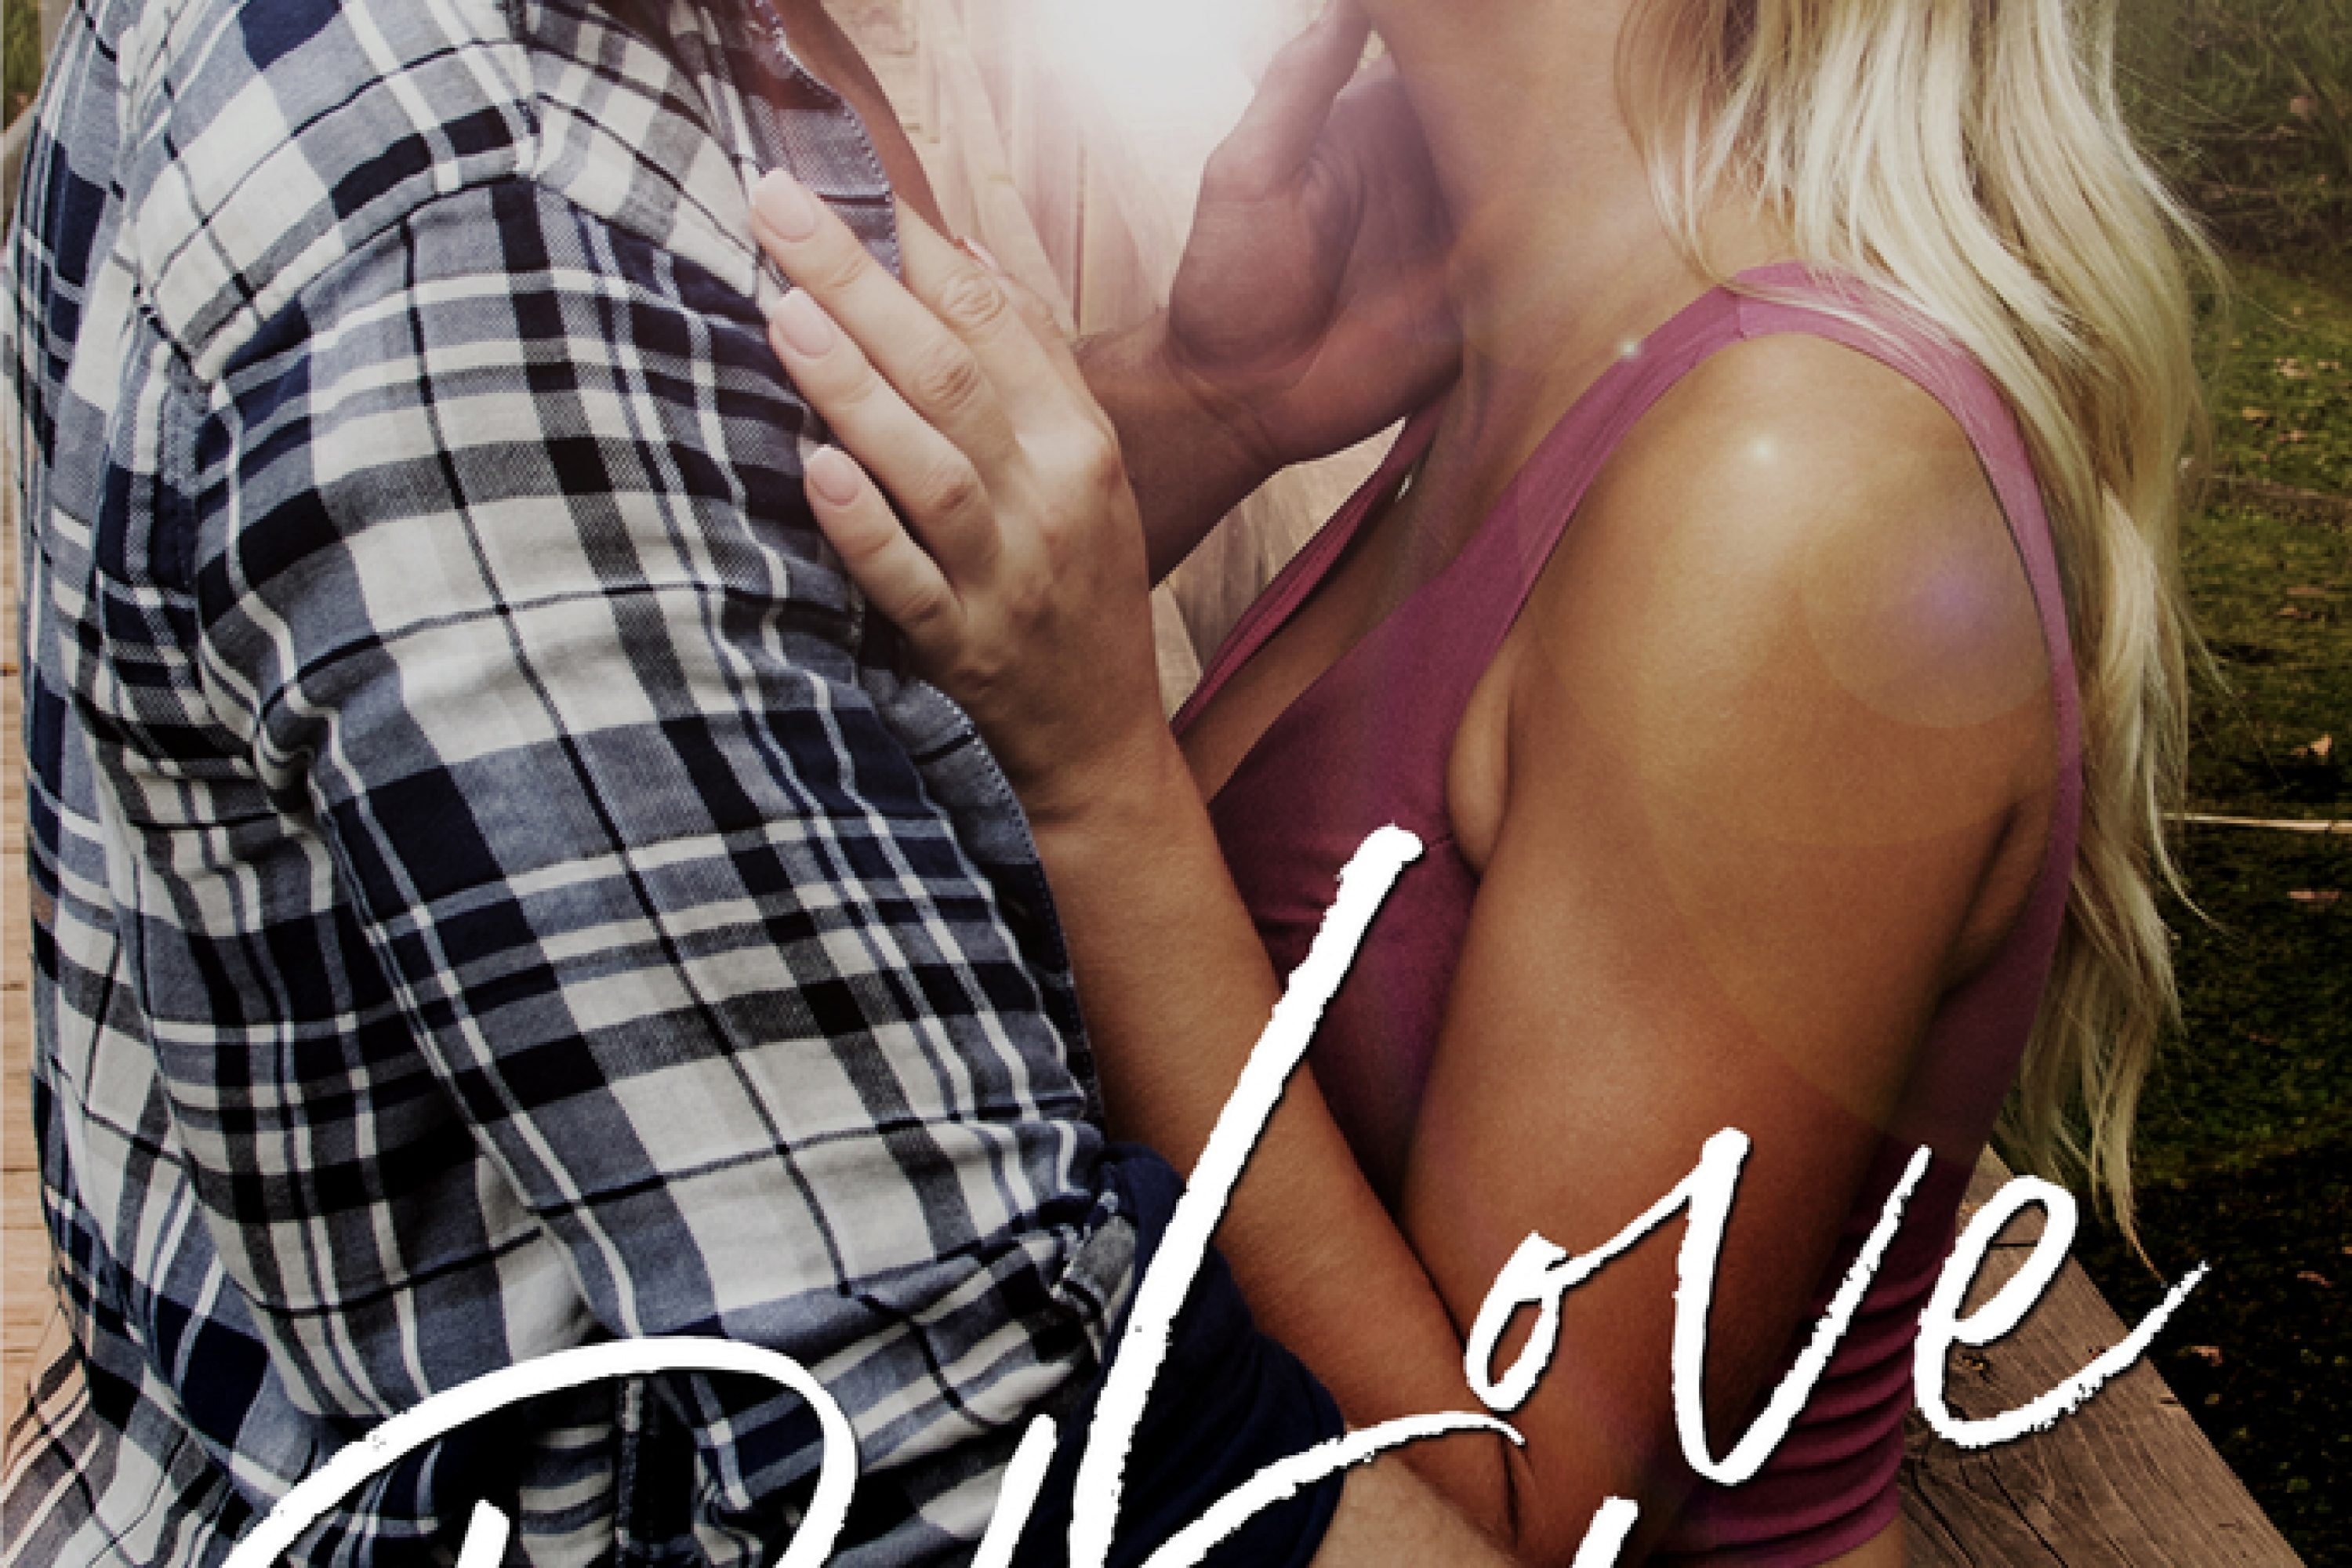 Review: Love Block by S.M. West